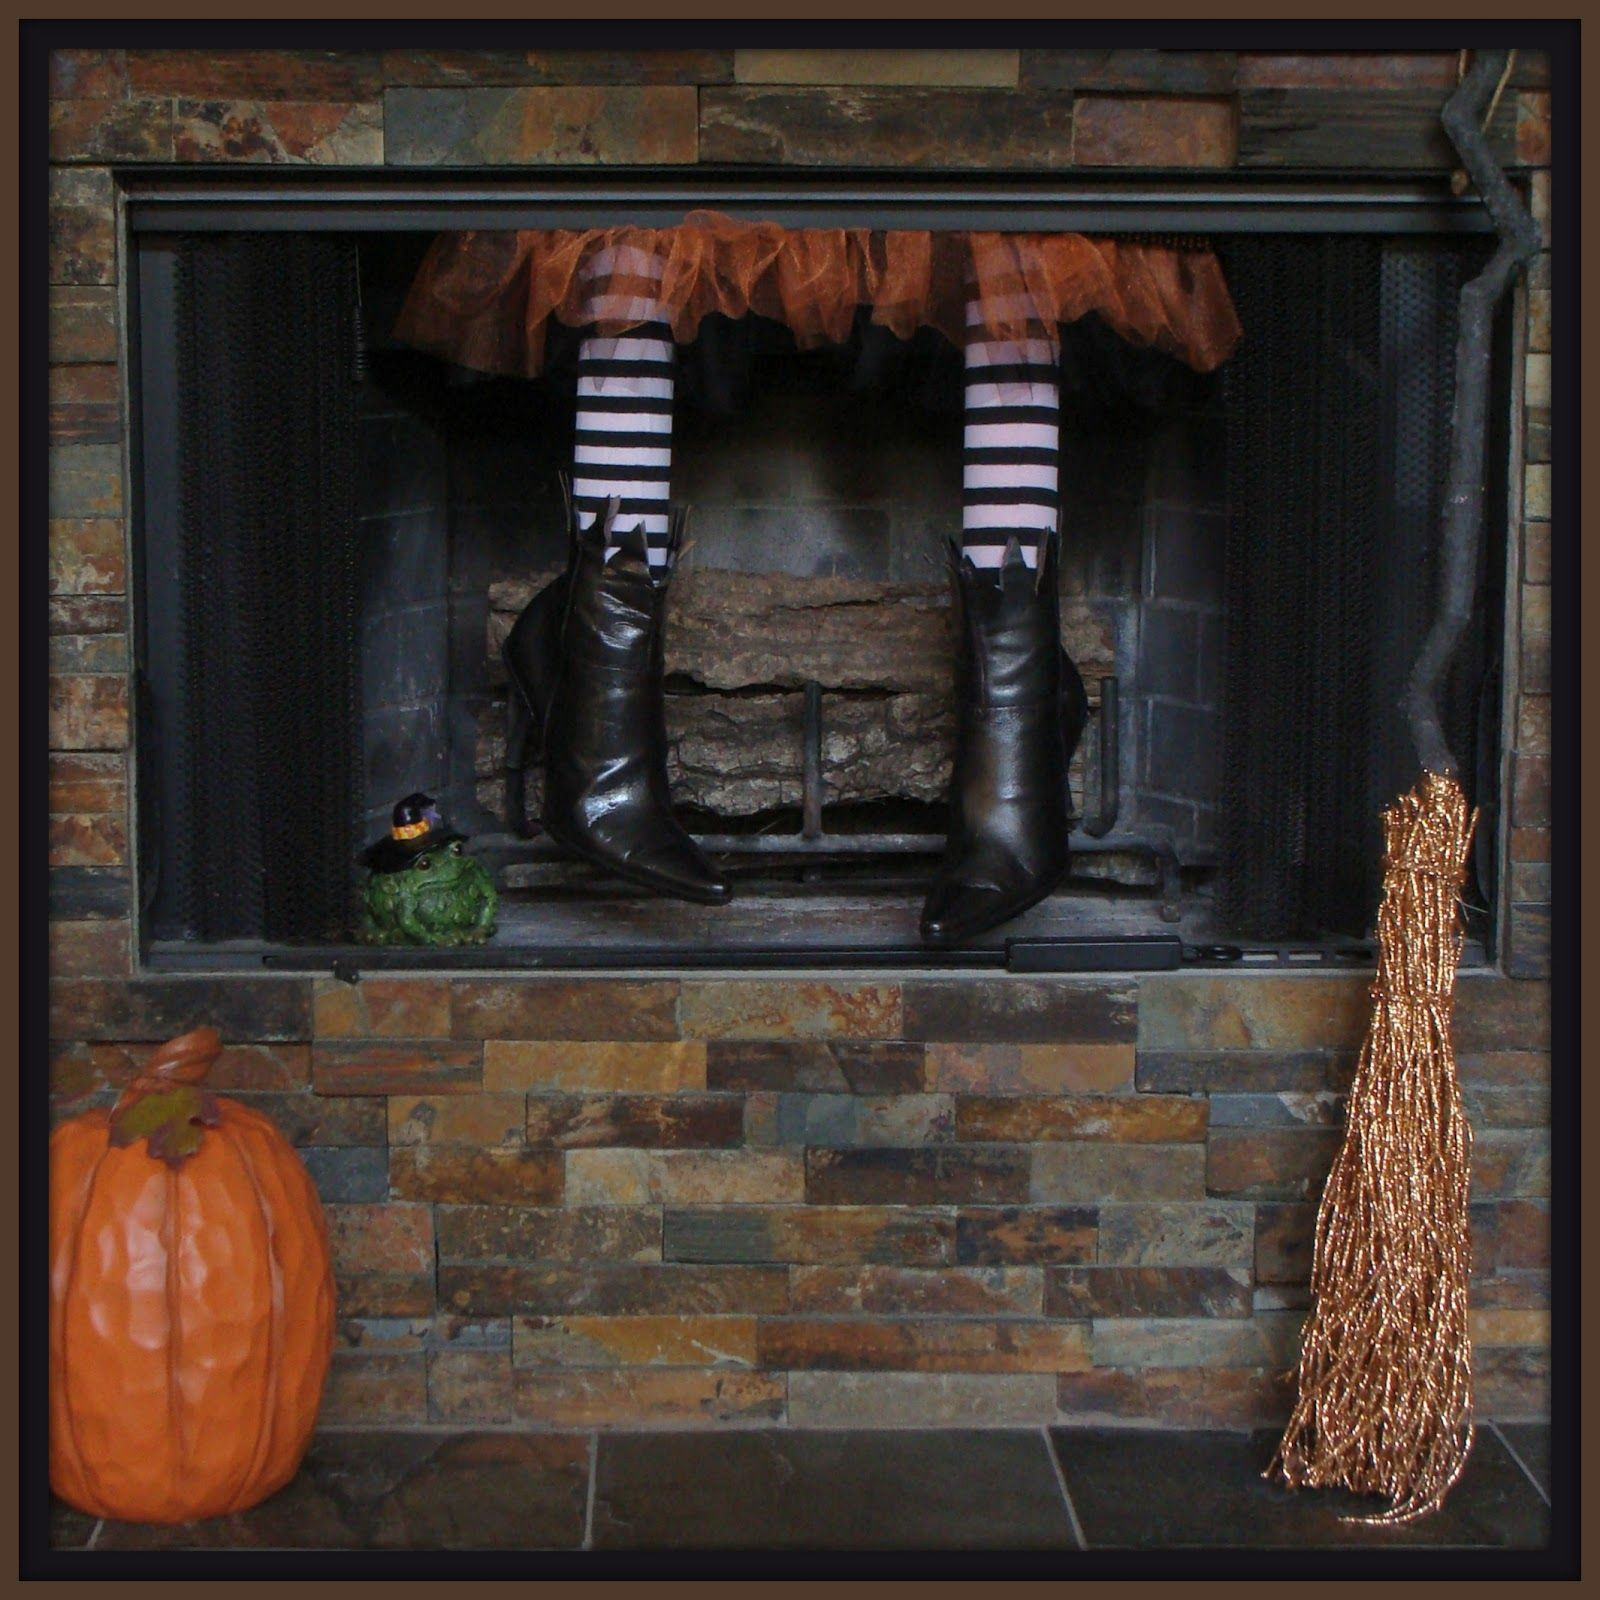 Fireplace Halloween Decorations: Crafty In Crosby: Fireplace Witch